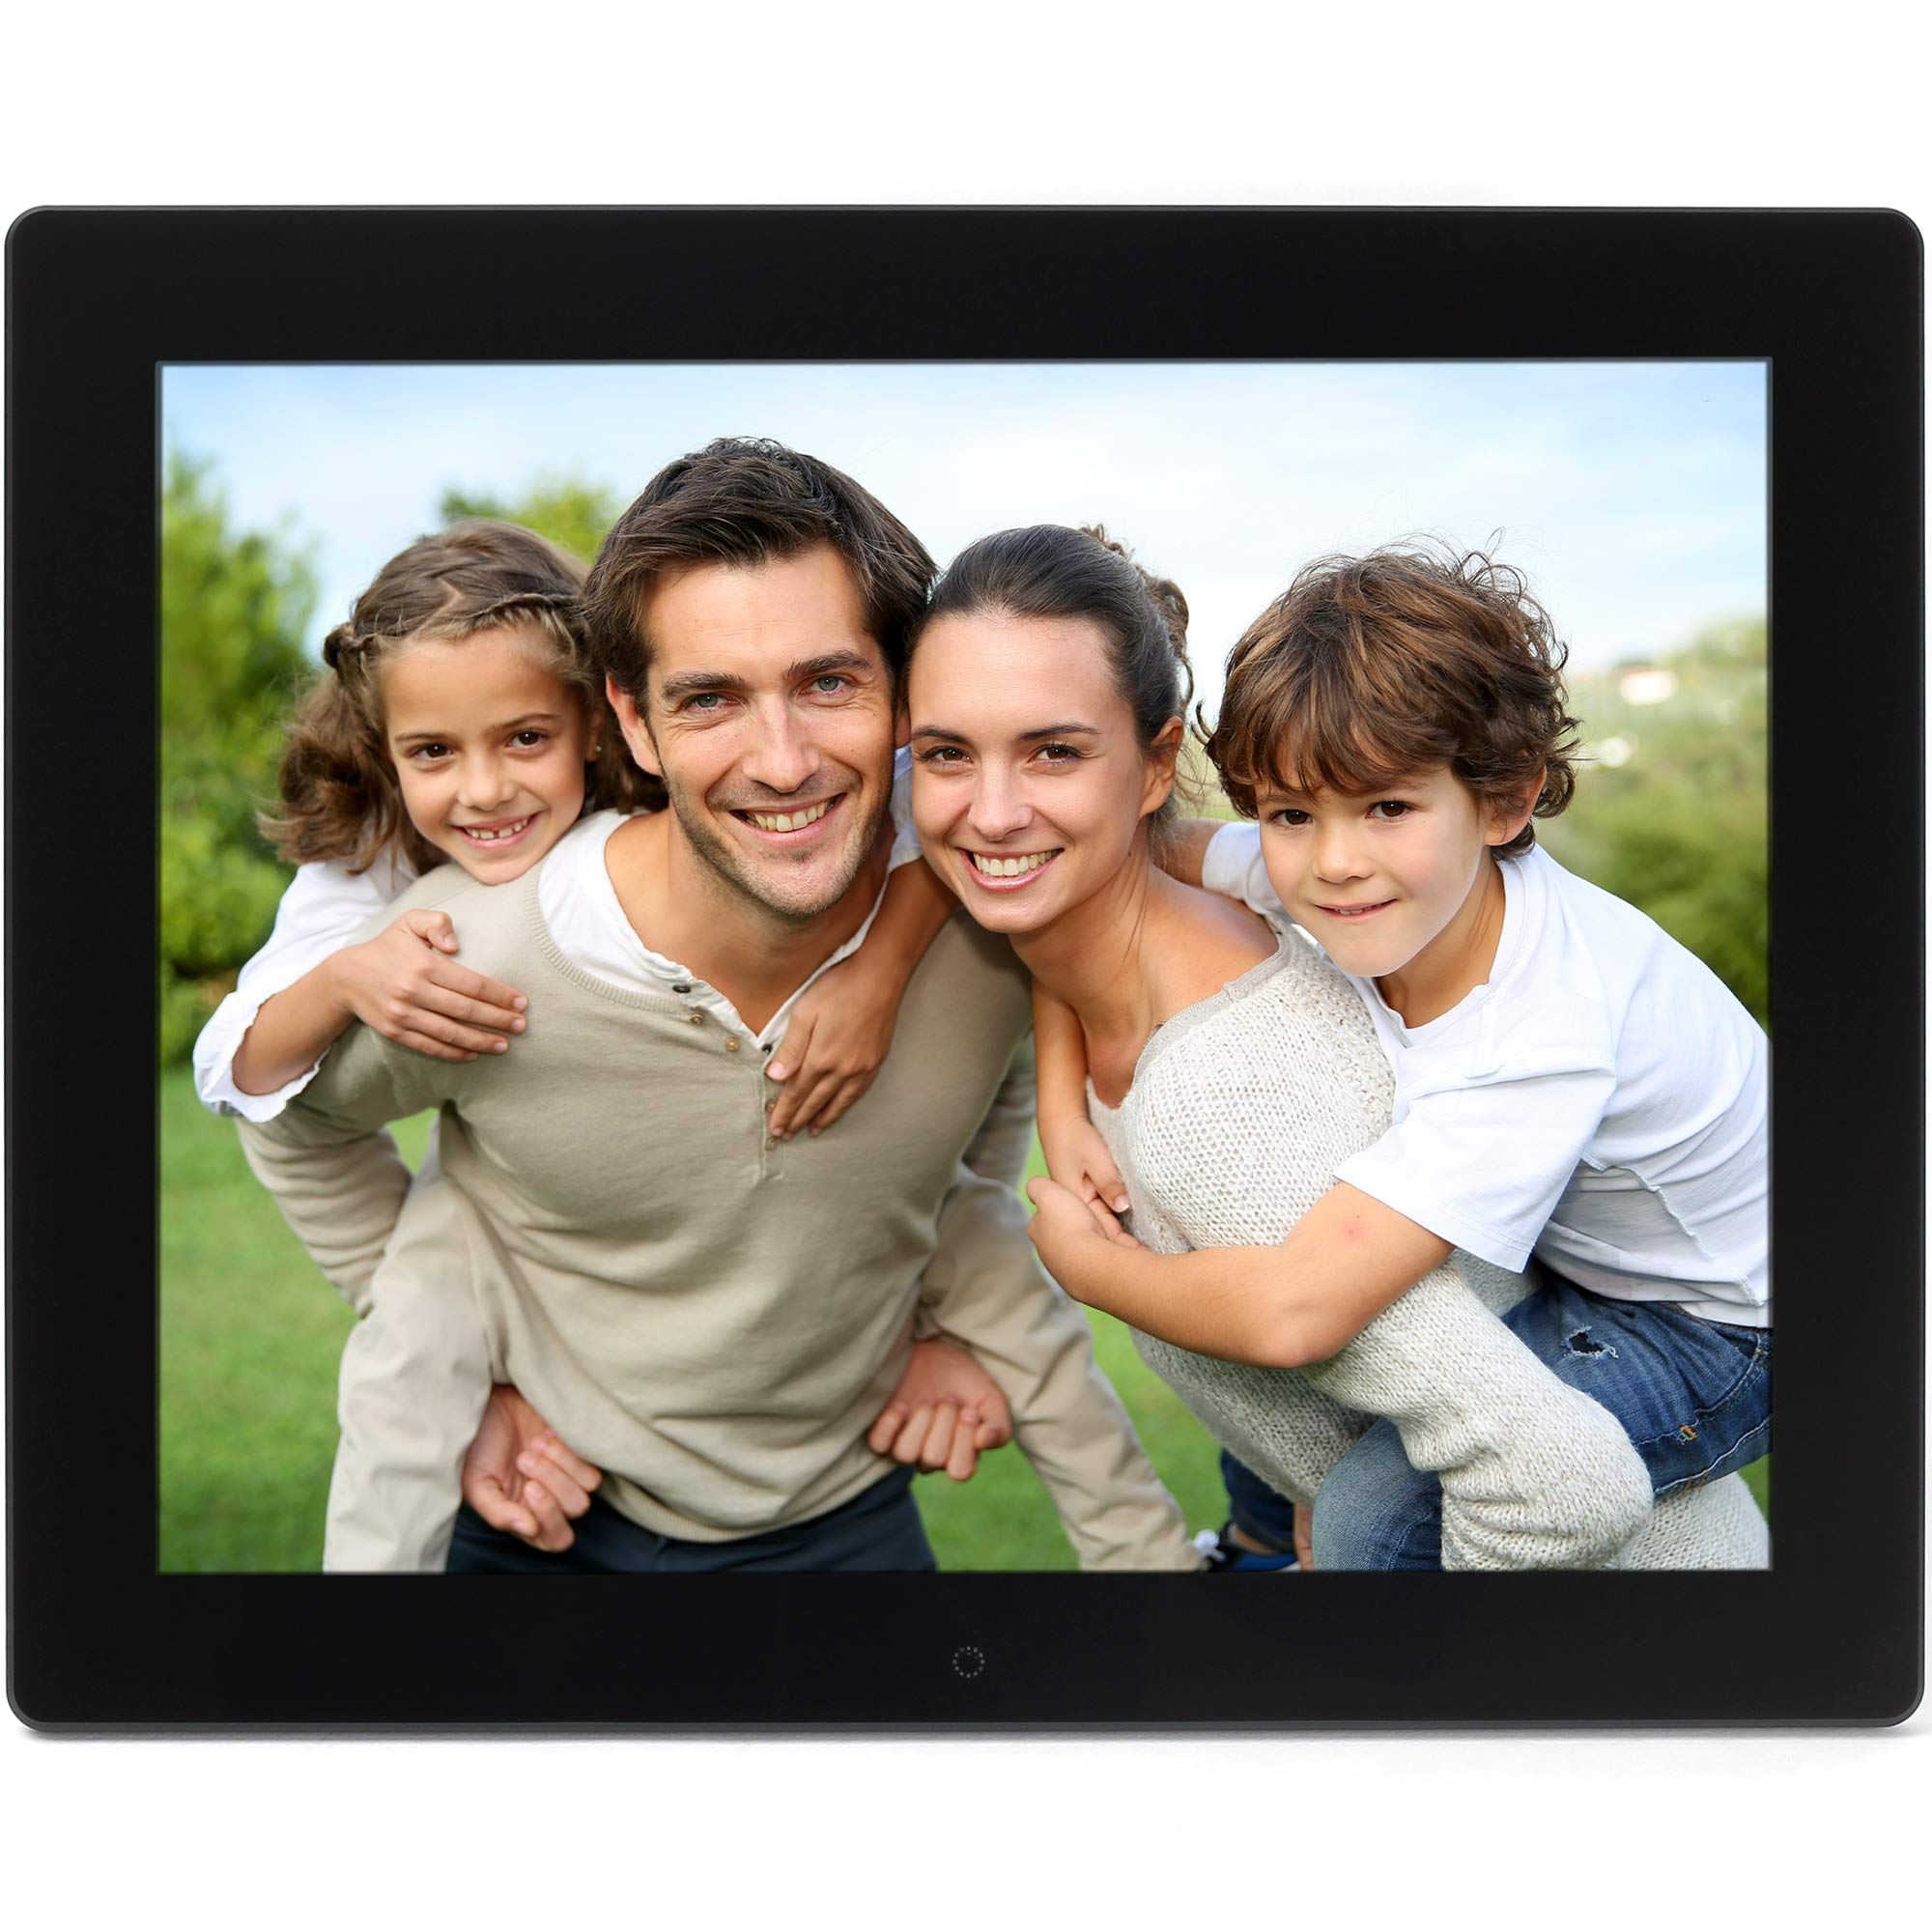 Micca NEO 15-Inch Digital Photo Frame with 8GB Storage, High Resolution LCD, 720P Video Playback, Auto On/Off Timer (M153A) by Micca